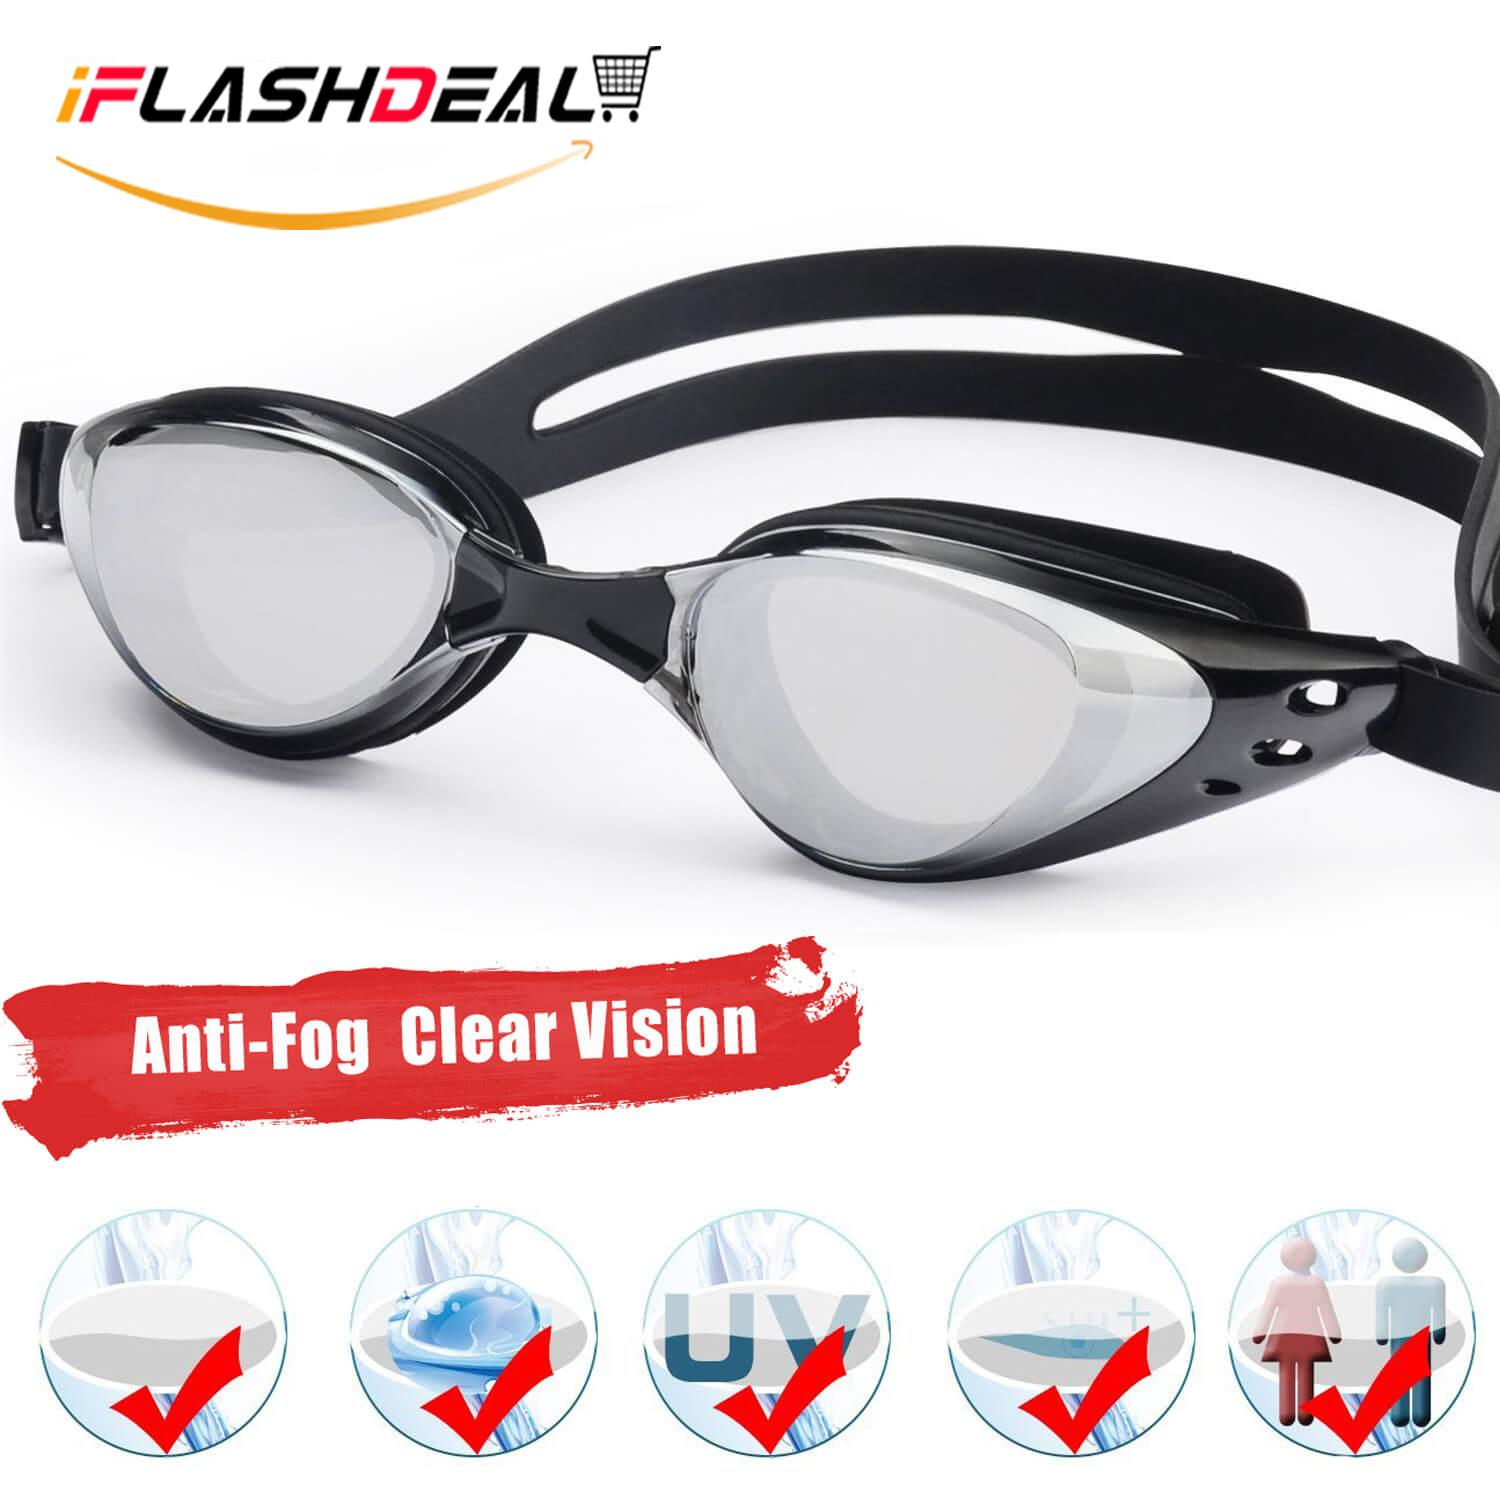 1c9390ea85b iFlashDeal Swimming Goggles Swim Goggles UV 400 Protection Anti Fog No  Leaking Wide View Pool Goggles